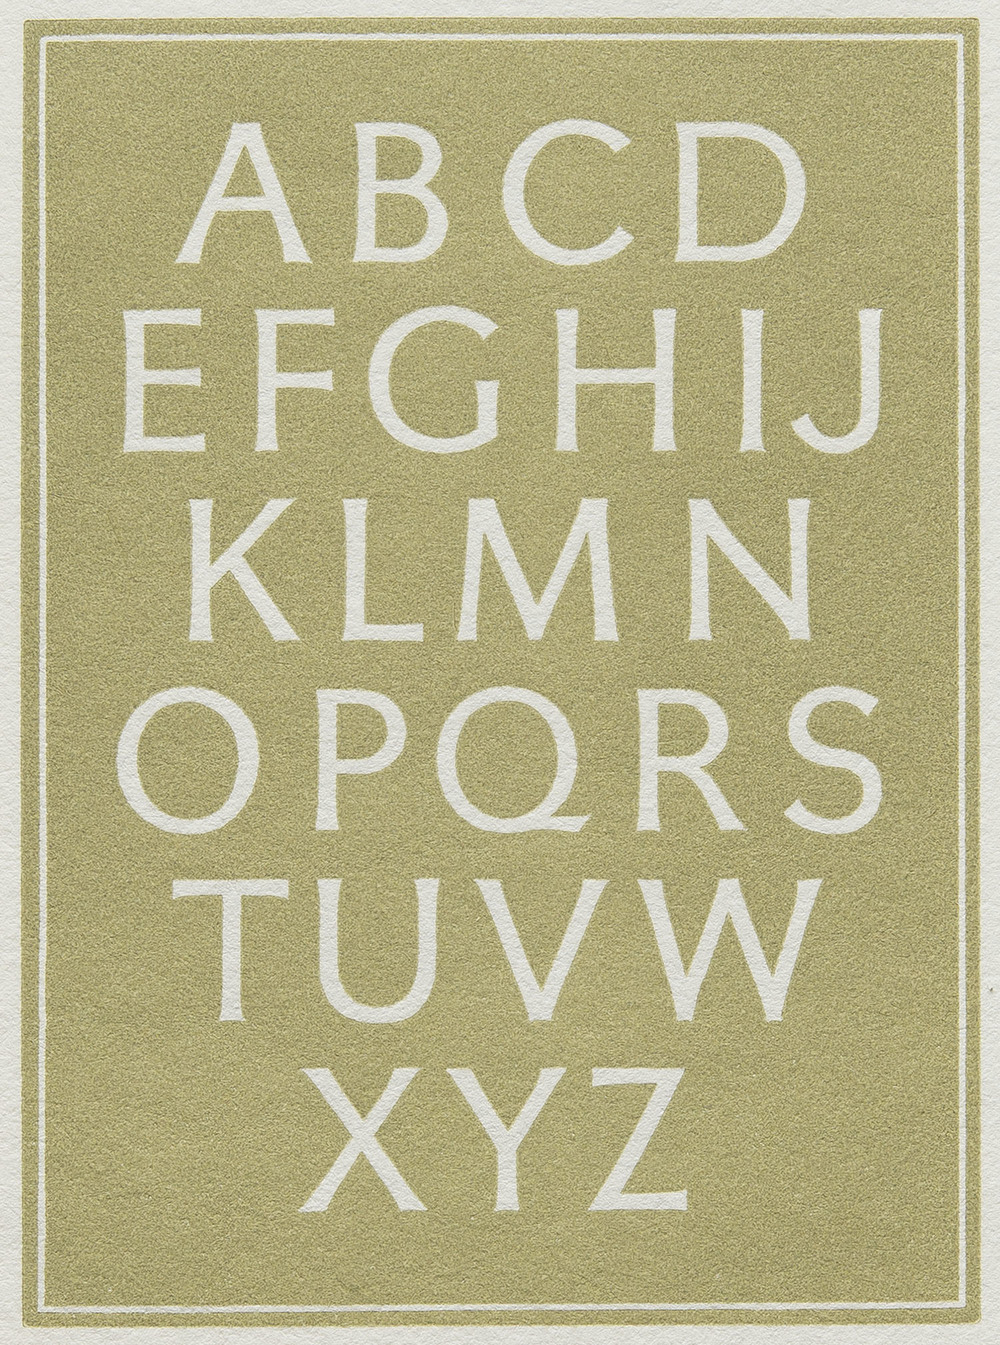 Leo Wyatt, detail of wood engraved plate in  Little Book of Alphabet s, The Florin Press, Biddenden Kent, 1985, 8 x 11 cm